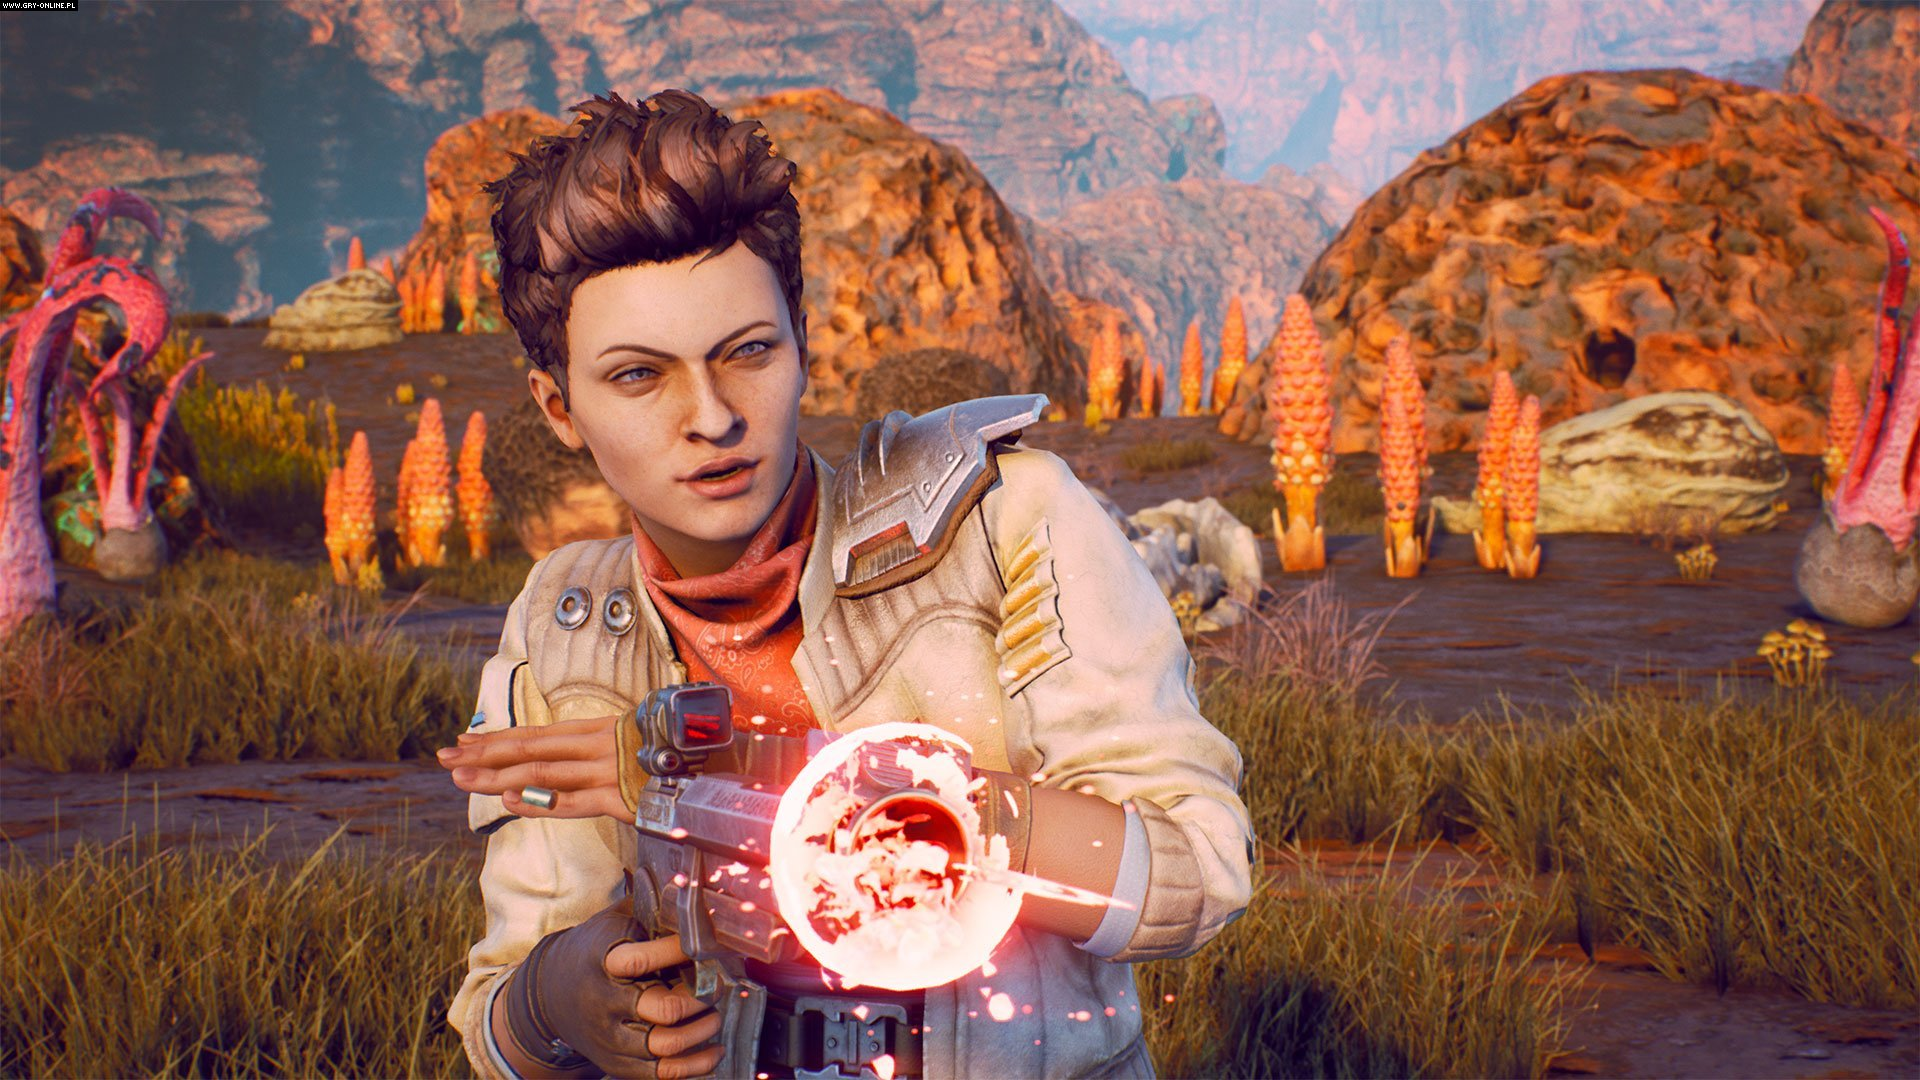 The Outer Worlds PC, PS4, XONE Games Image 10/21, Obsidian Entertainment, Private Division